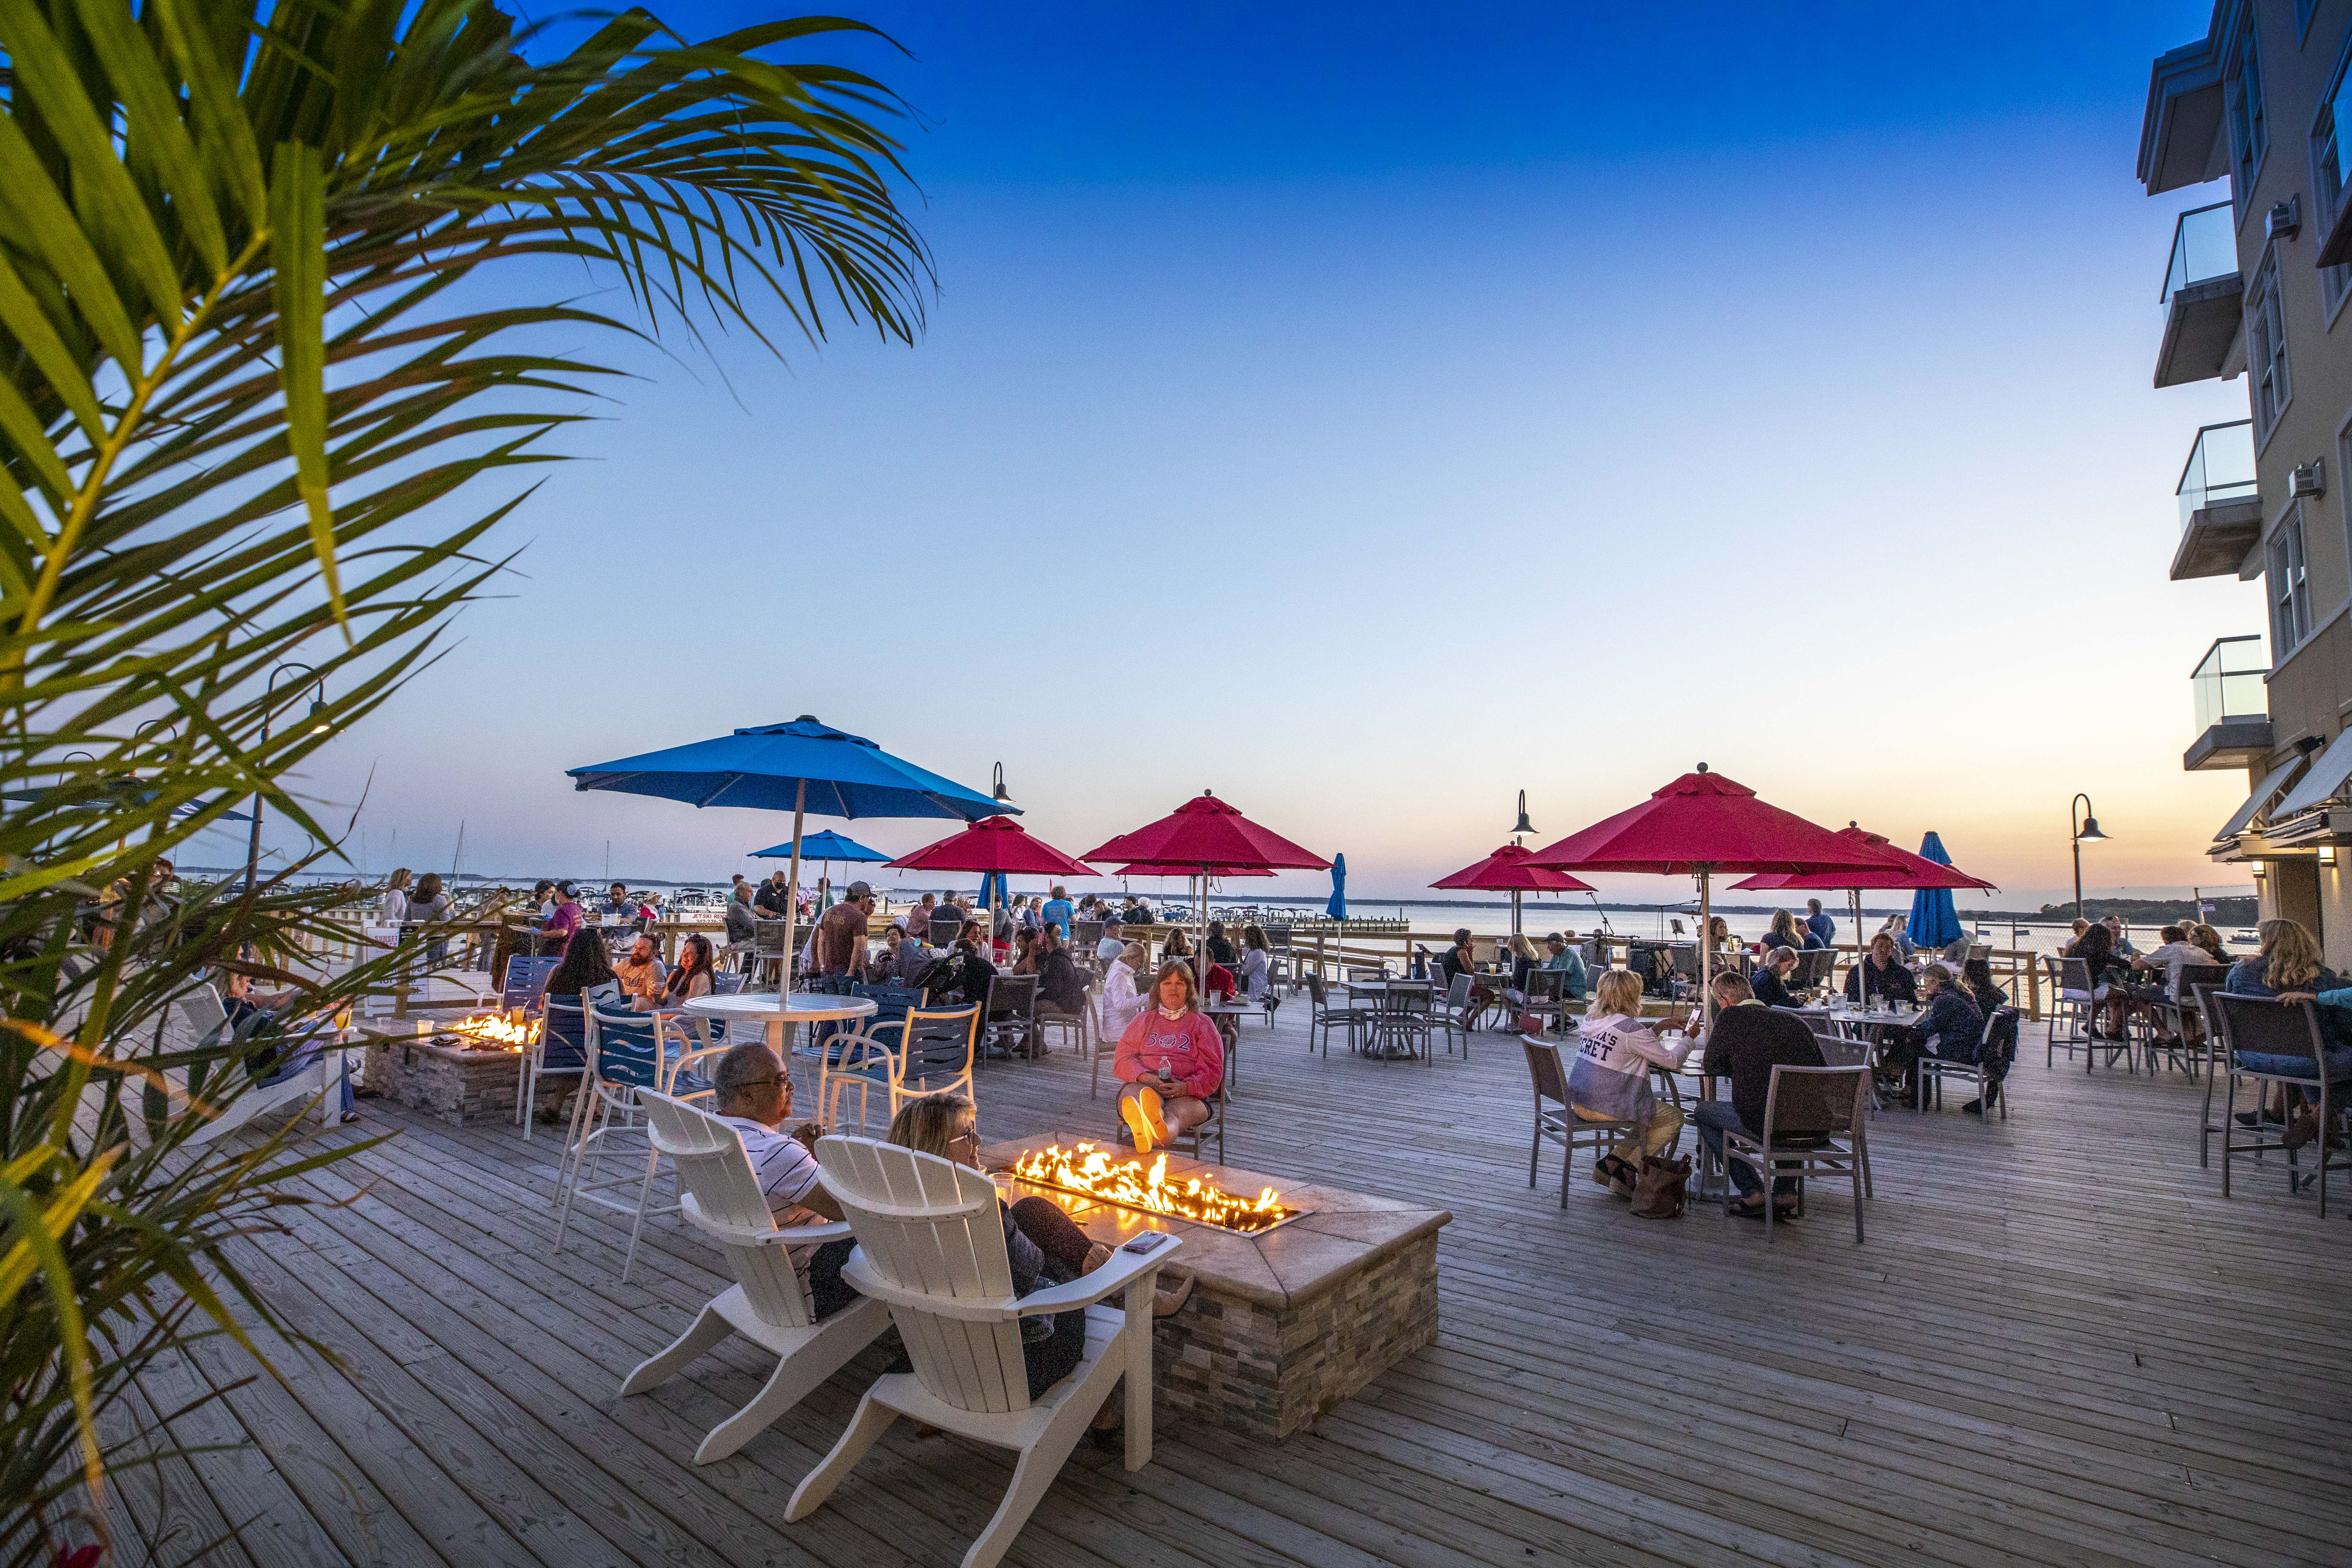 Sunset Deck at Lighthouse Cove Event Center, Dewey Beach